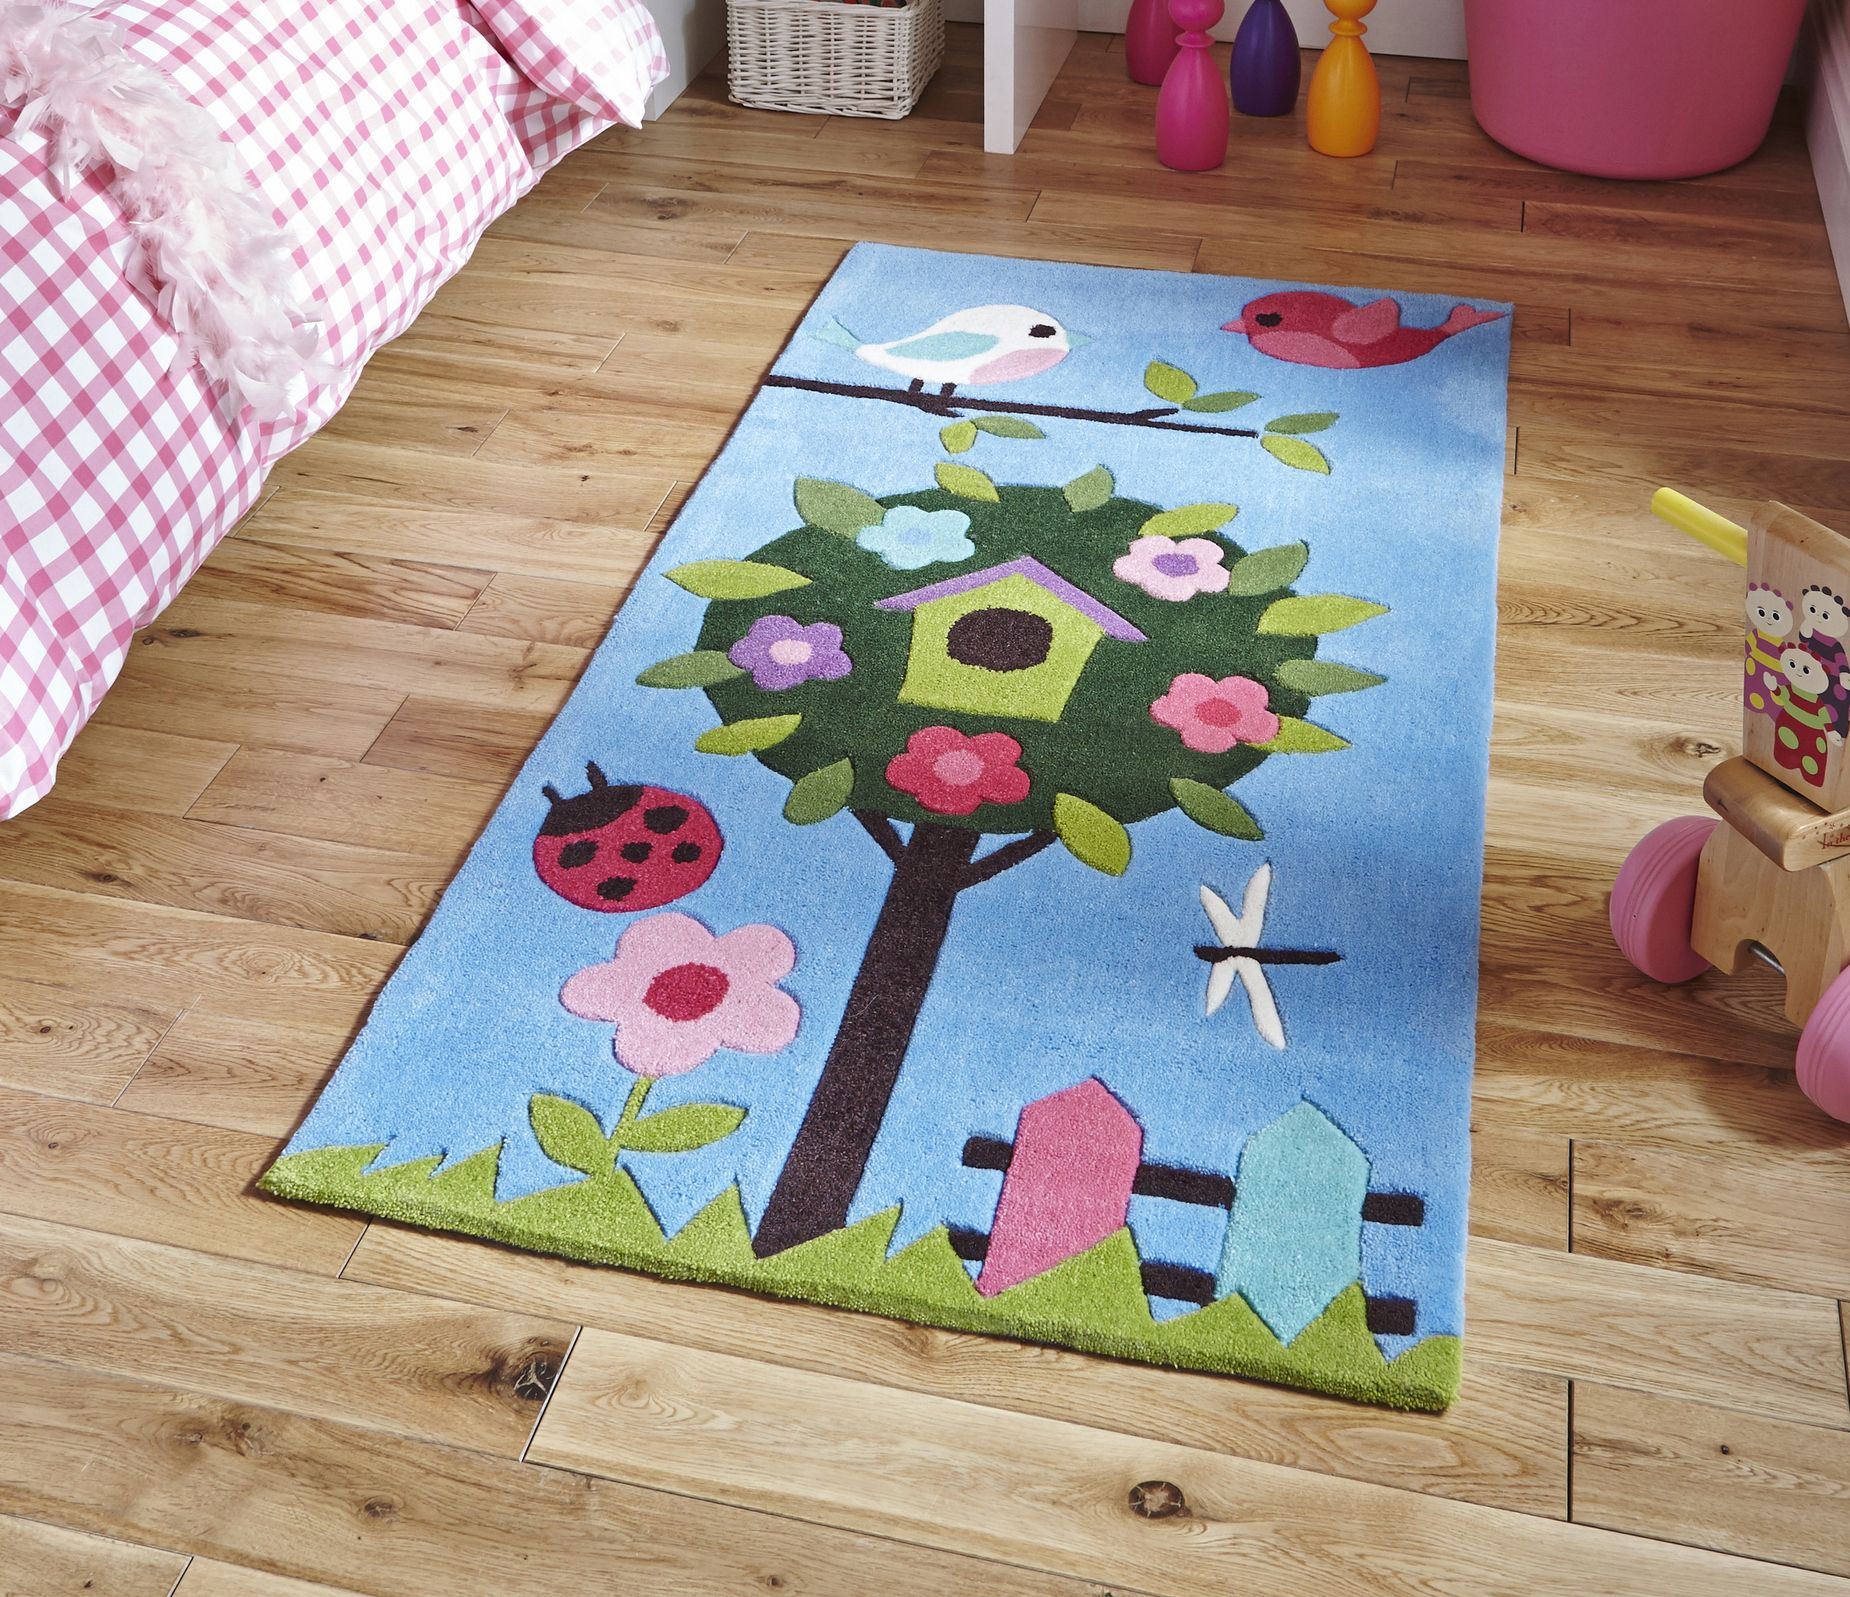 Hong Kong Kids Rug 4897 With Free Delivery To Mainland Uk Children S Highly Recommended Rugs That Are Soft Easy Clean